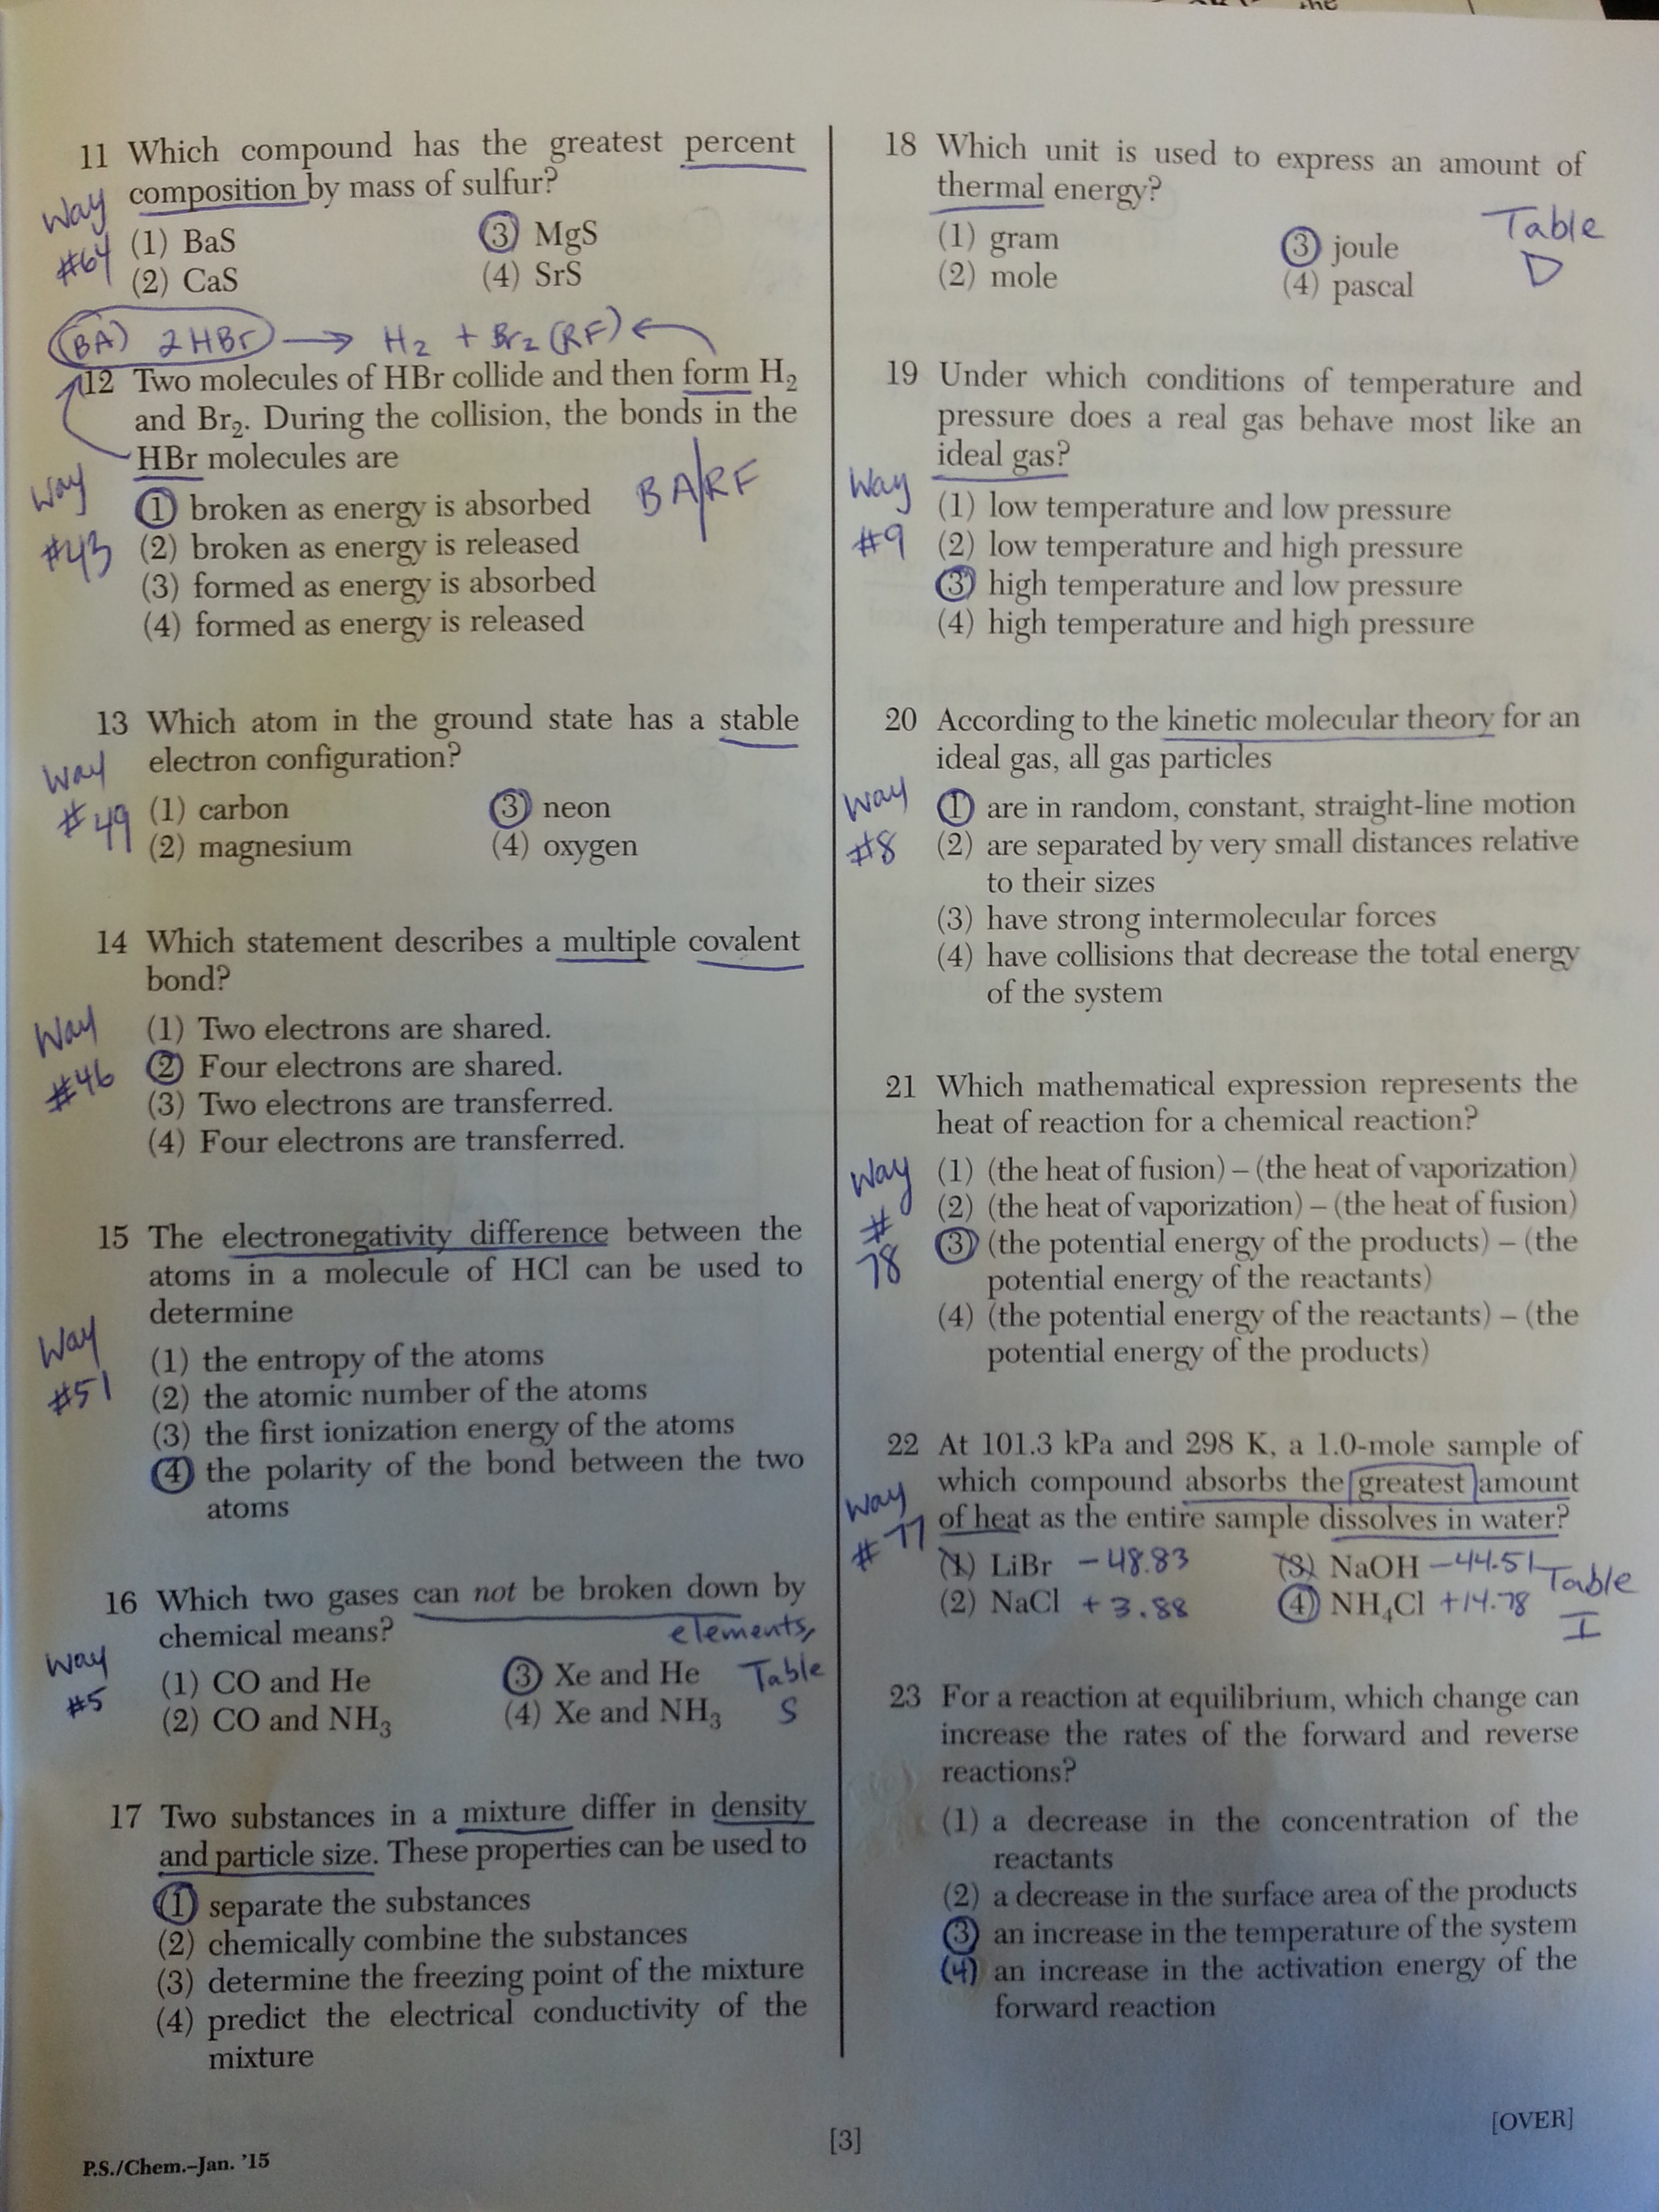 2015 chemistry regents questions answers ways 20150128 144808